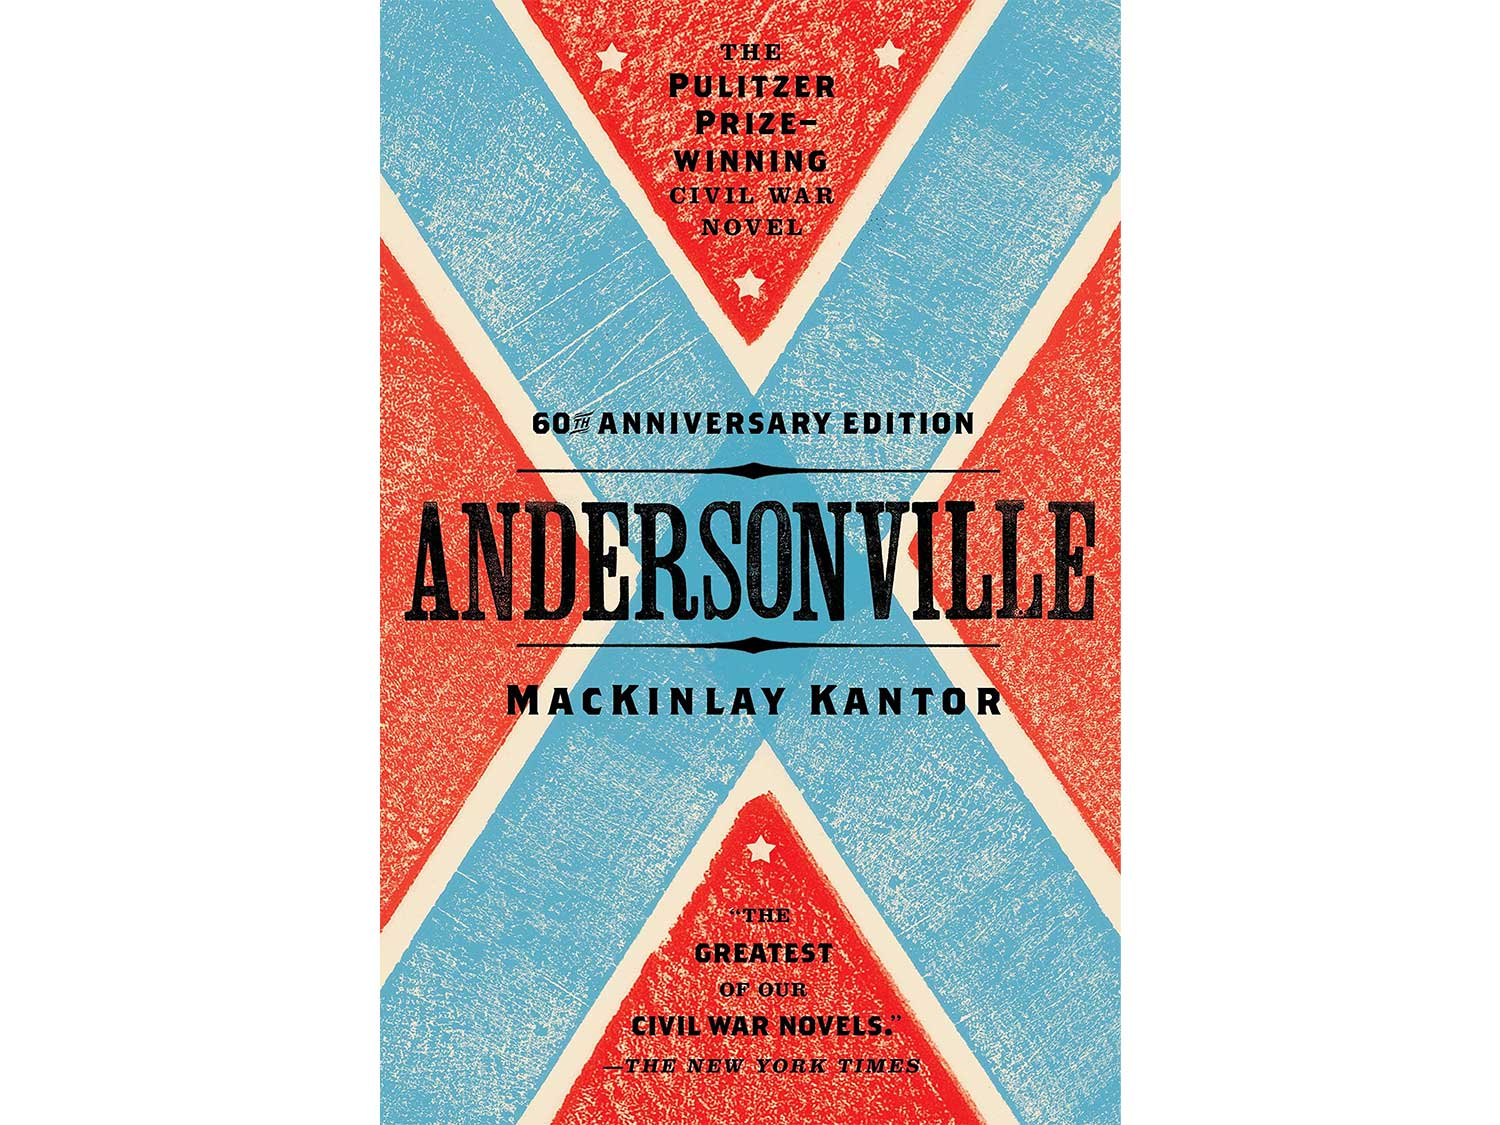 Andersonville, by Mackinlay Kantor